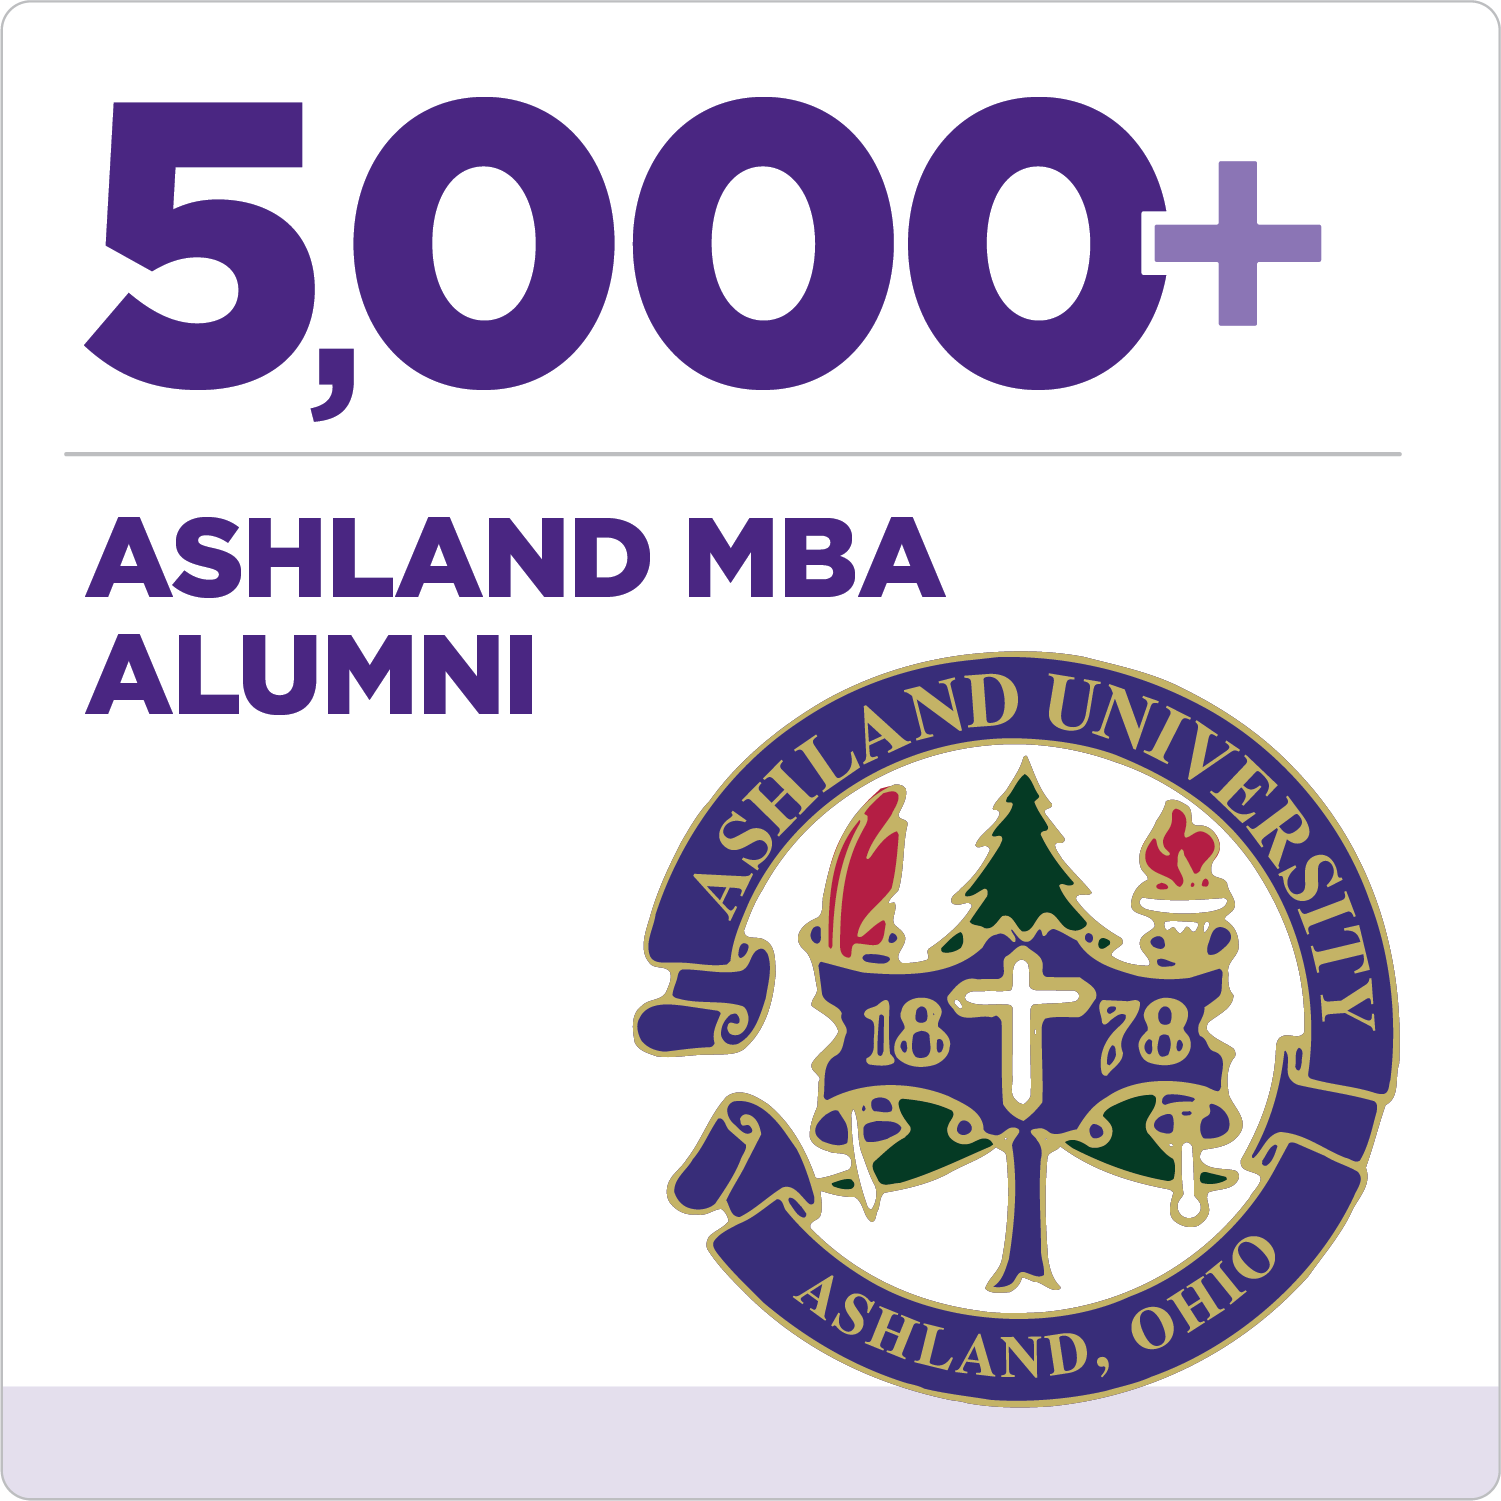 MBA Programs at Ashland University - Ashland University MBA